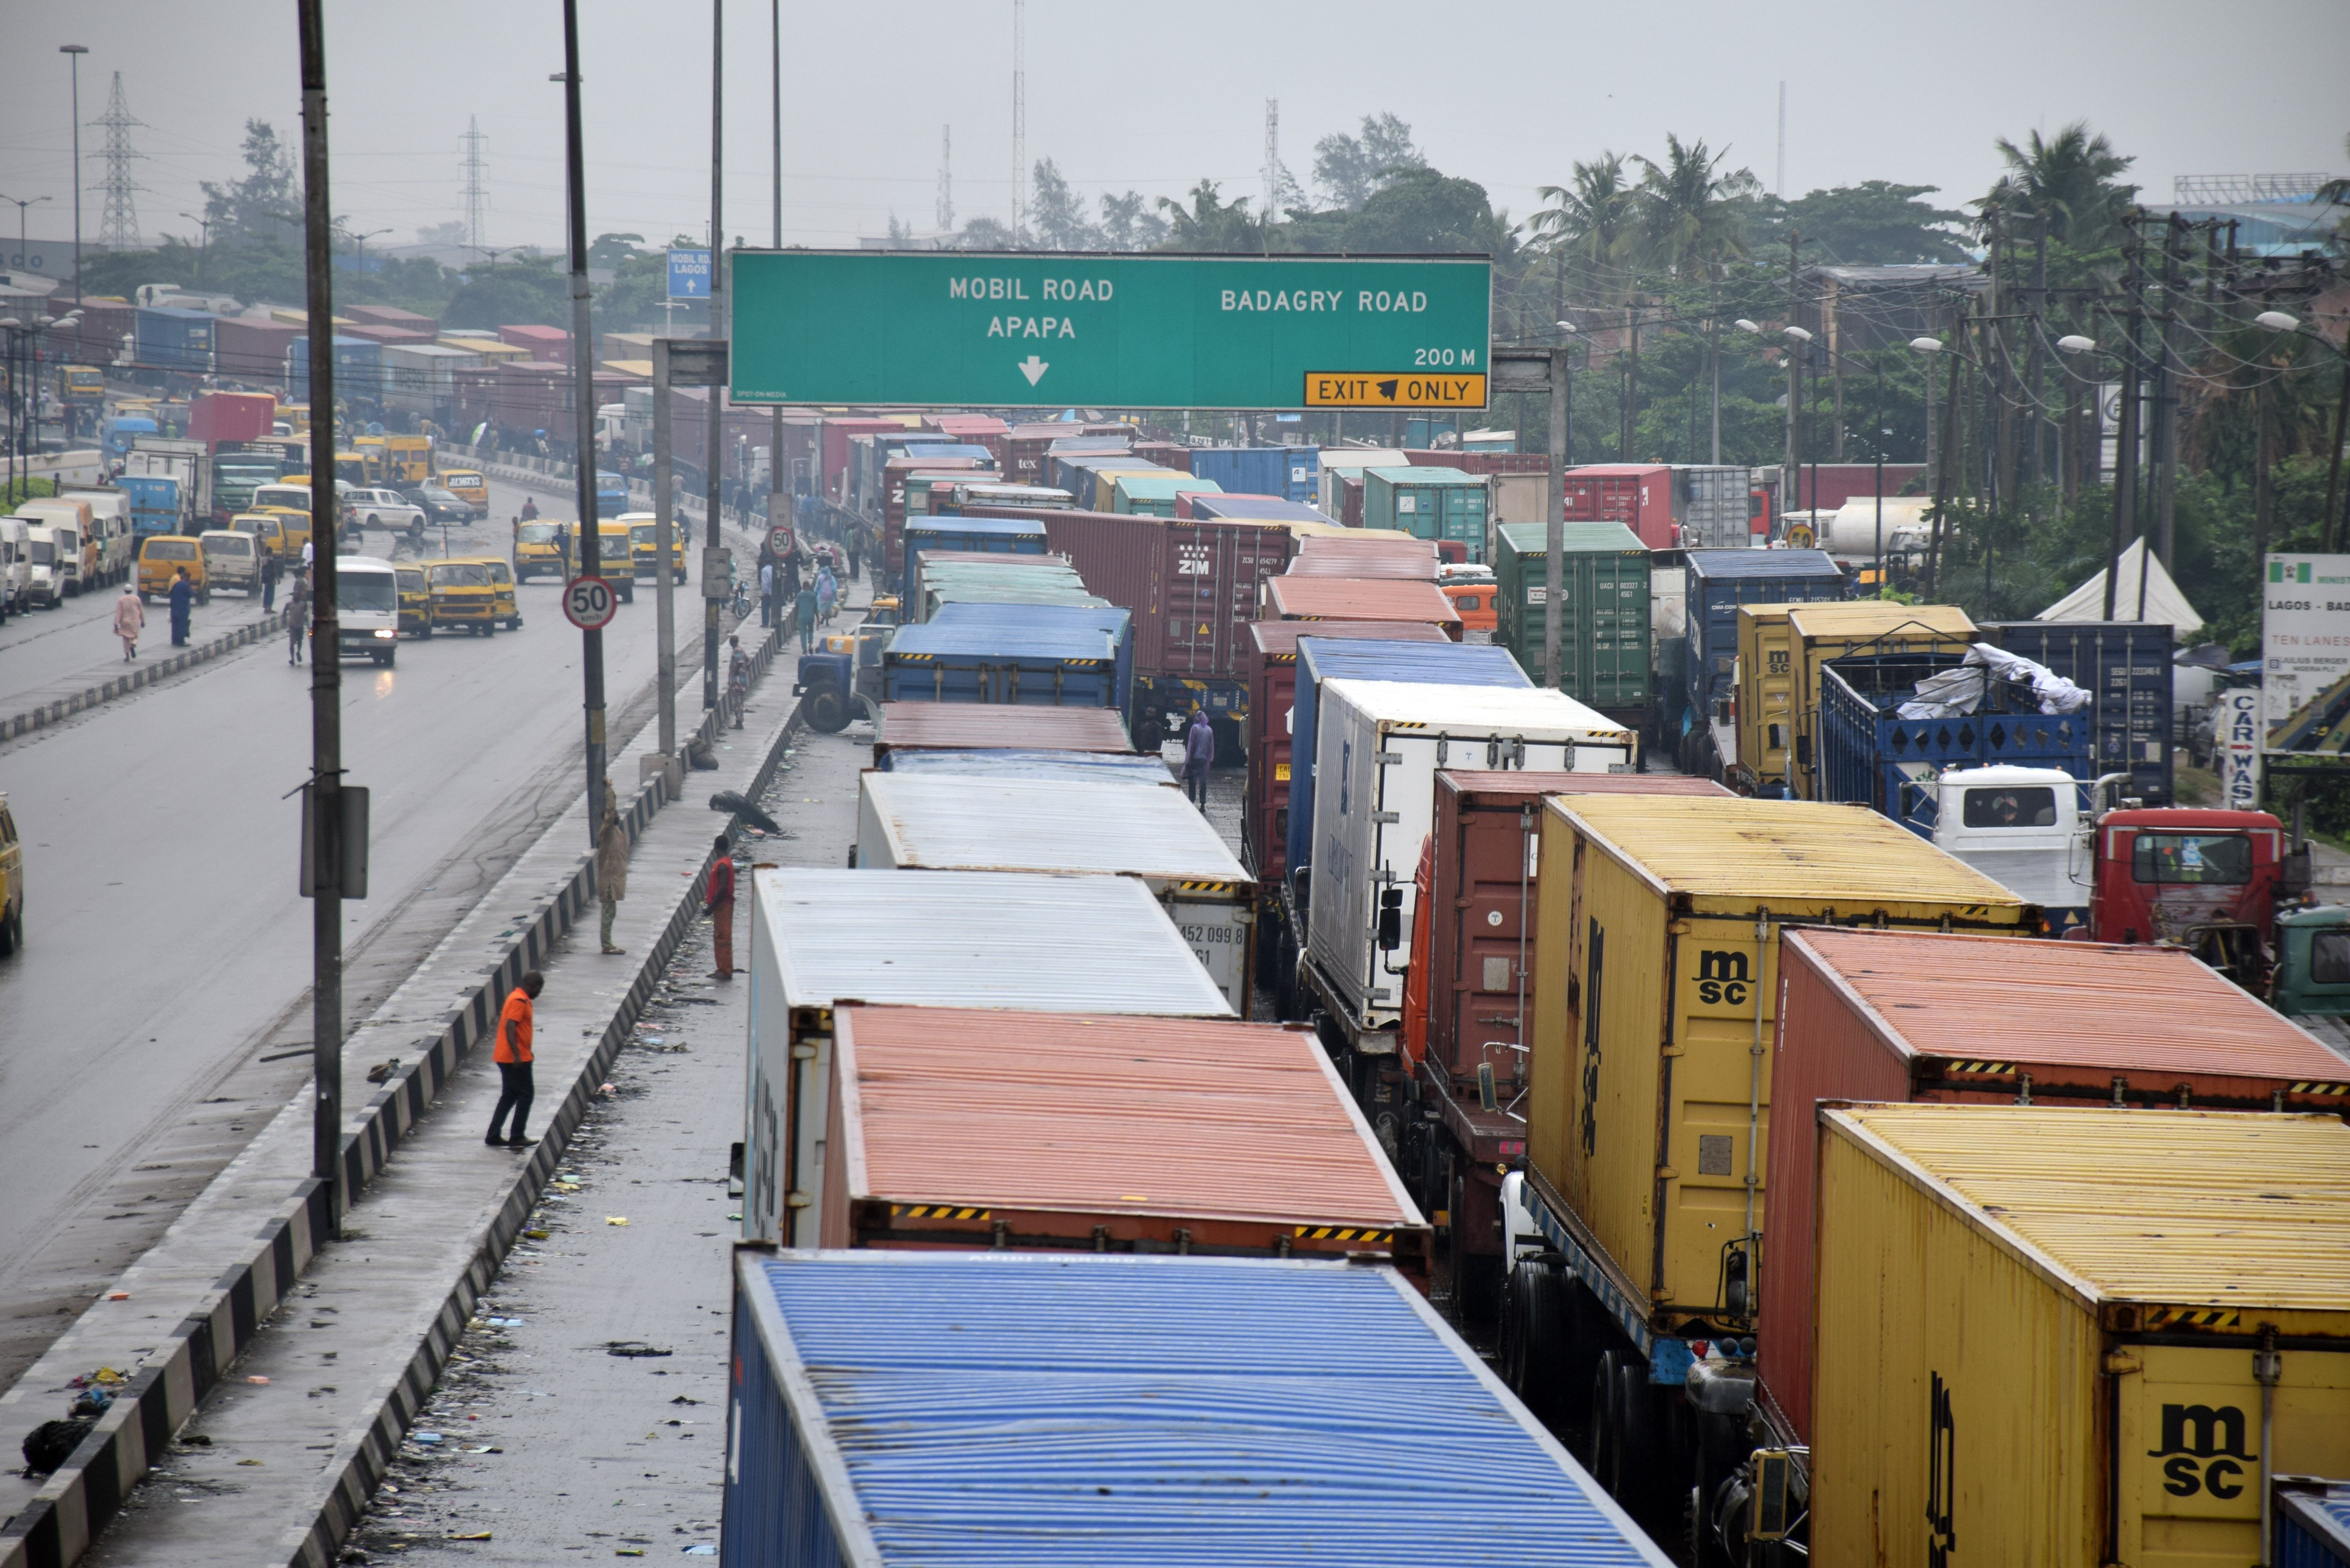 Shippers council revives evacuation of cargoes by rail at Apapa port